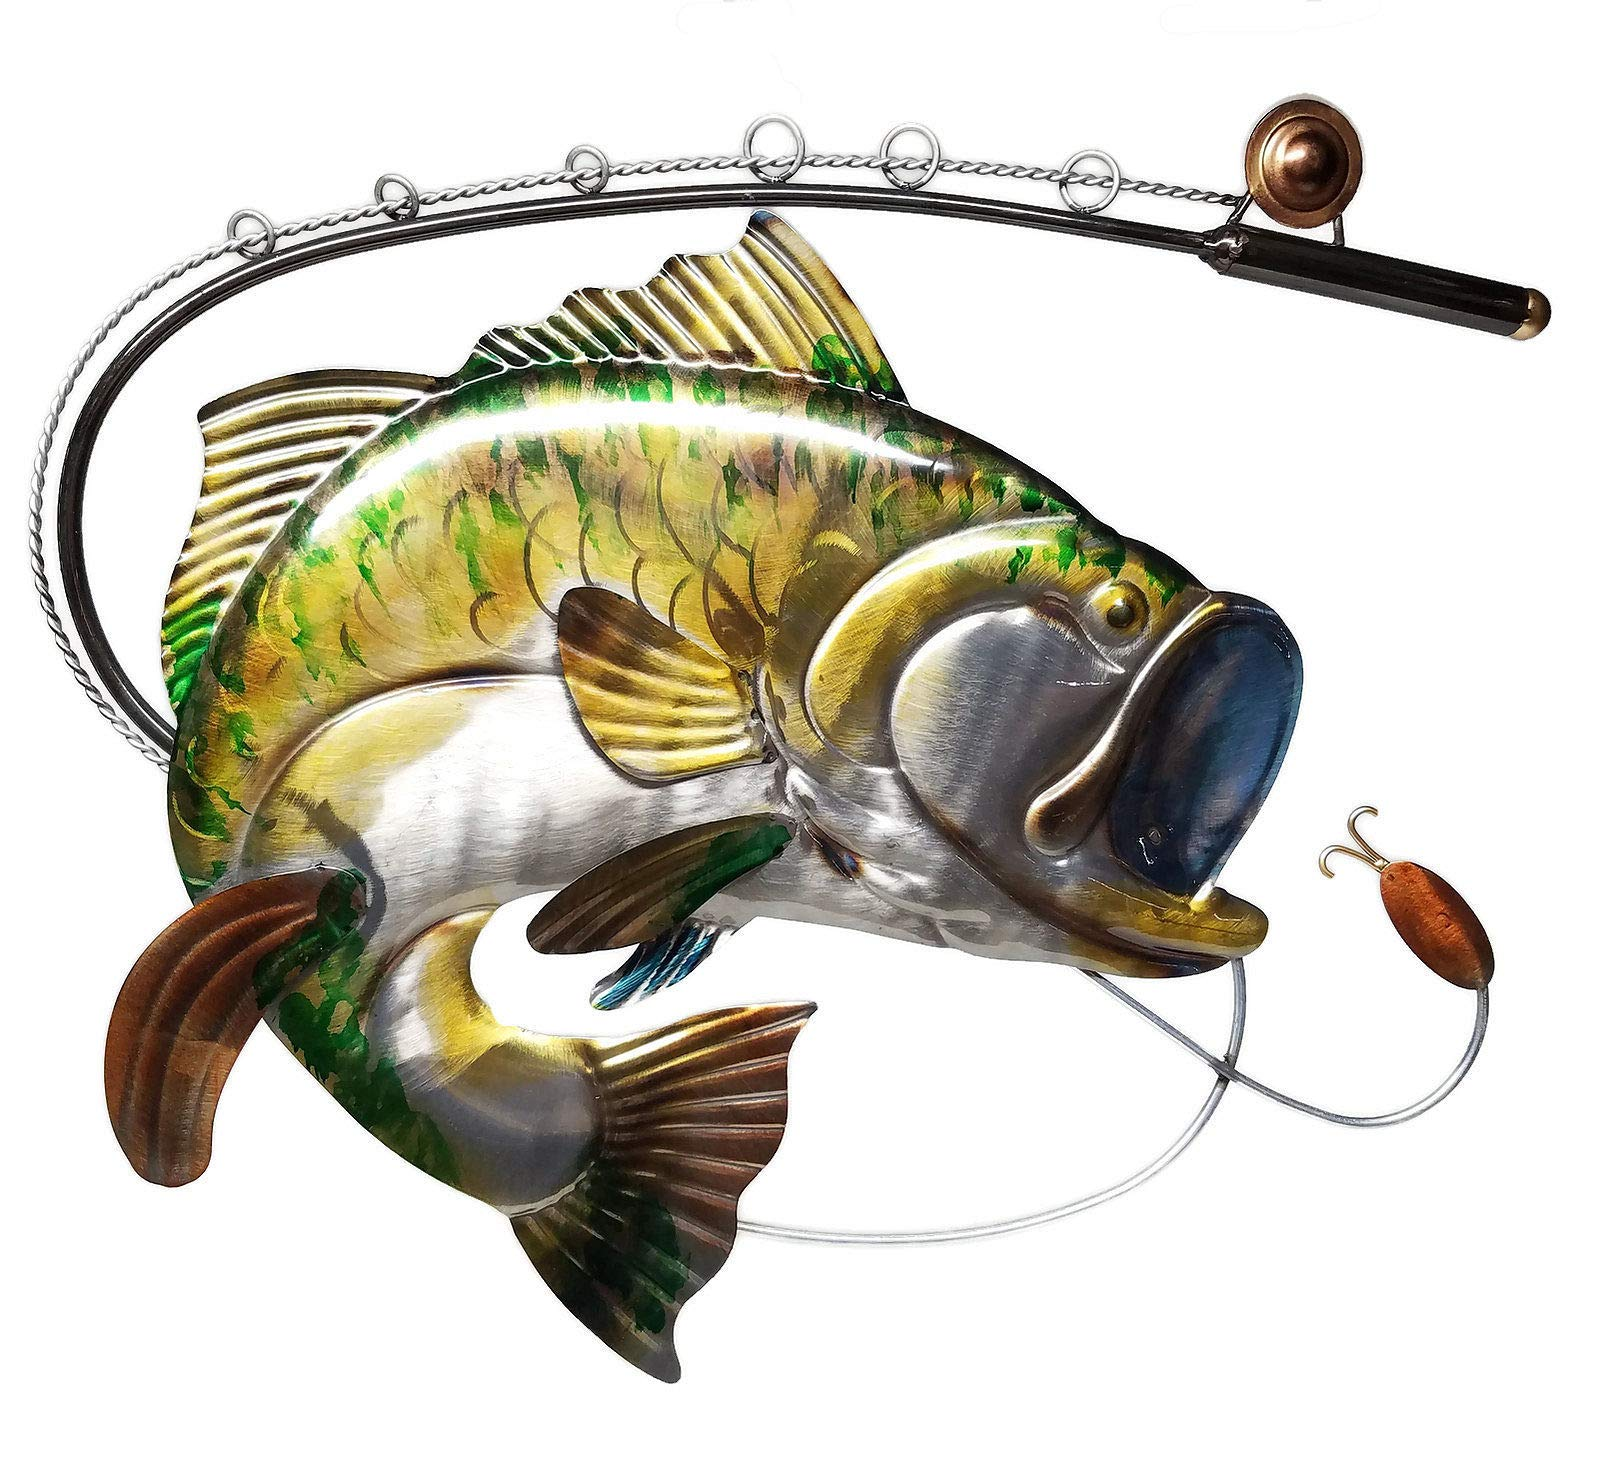 Fishing Decor Largemouth Bass Fish and Fishing Pole Metal Wall Decor, Large 23-inch